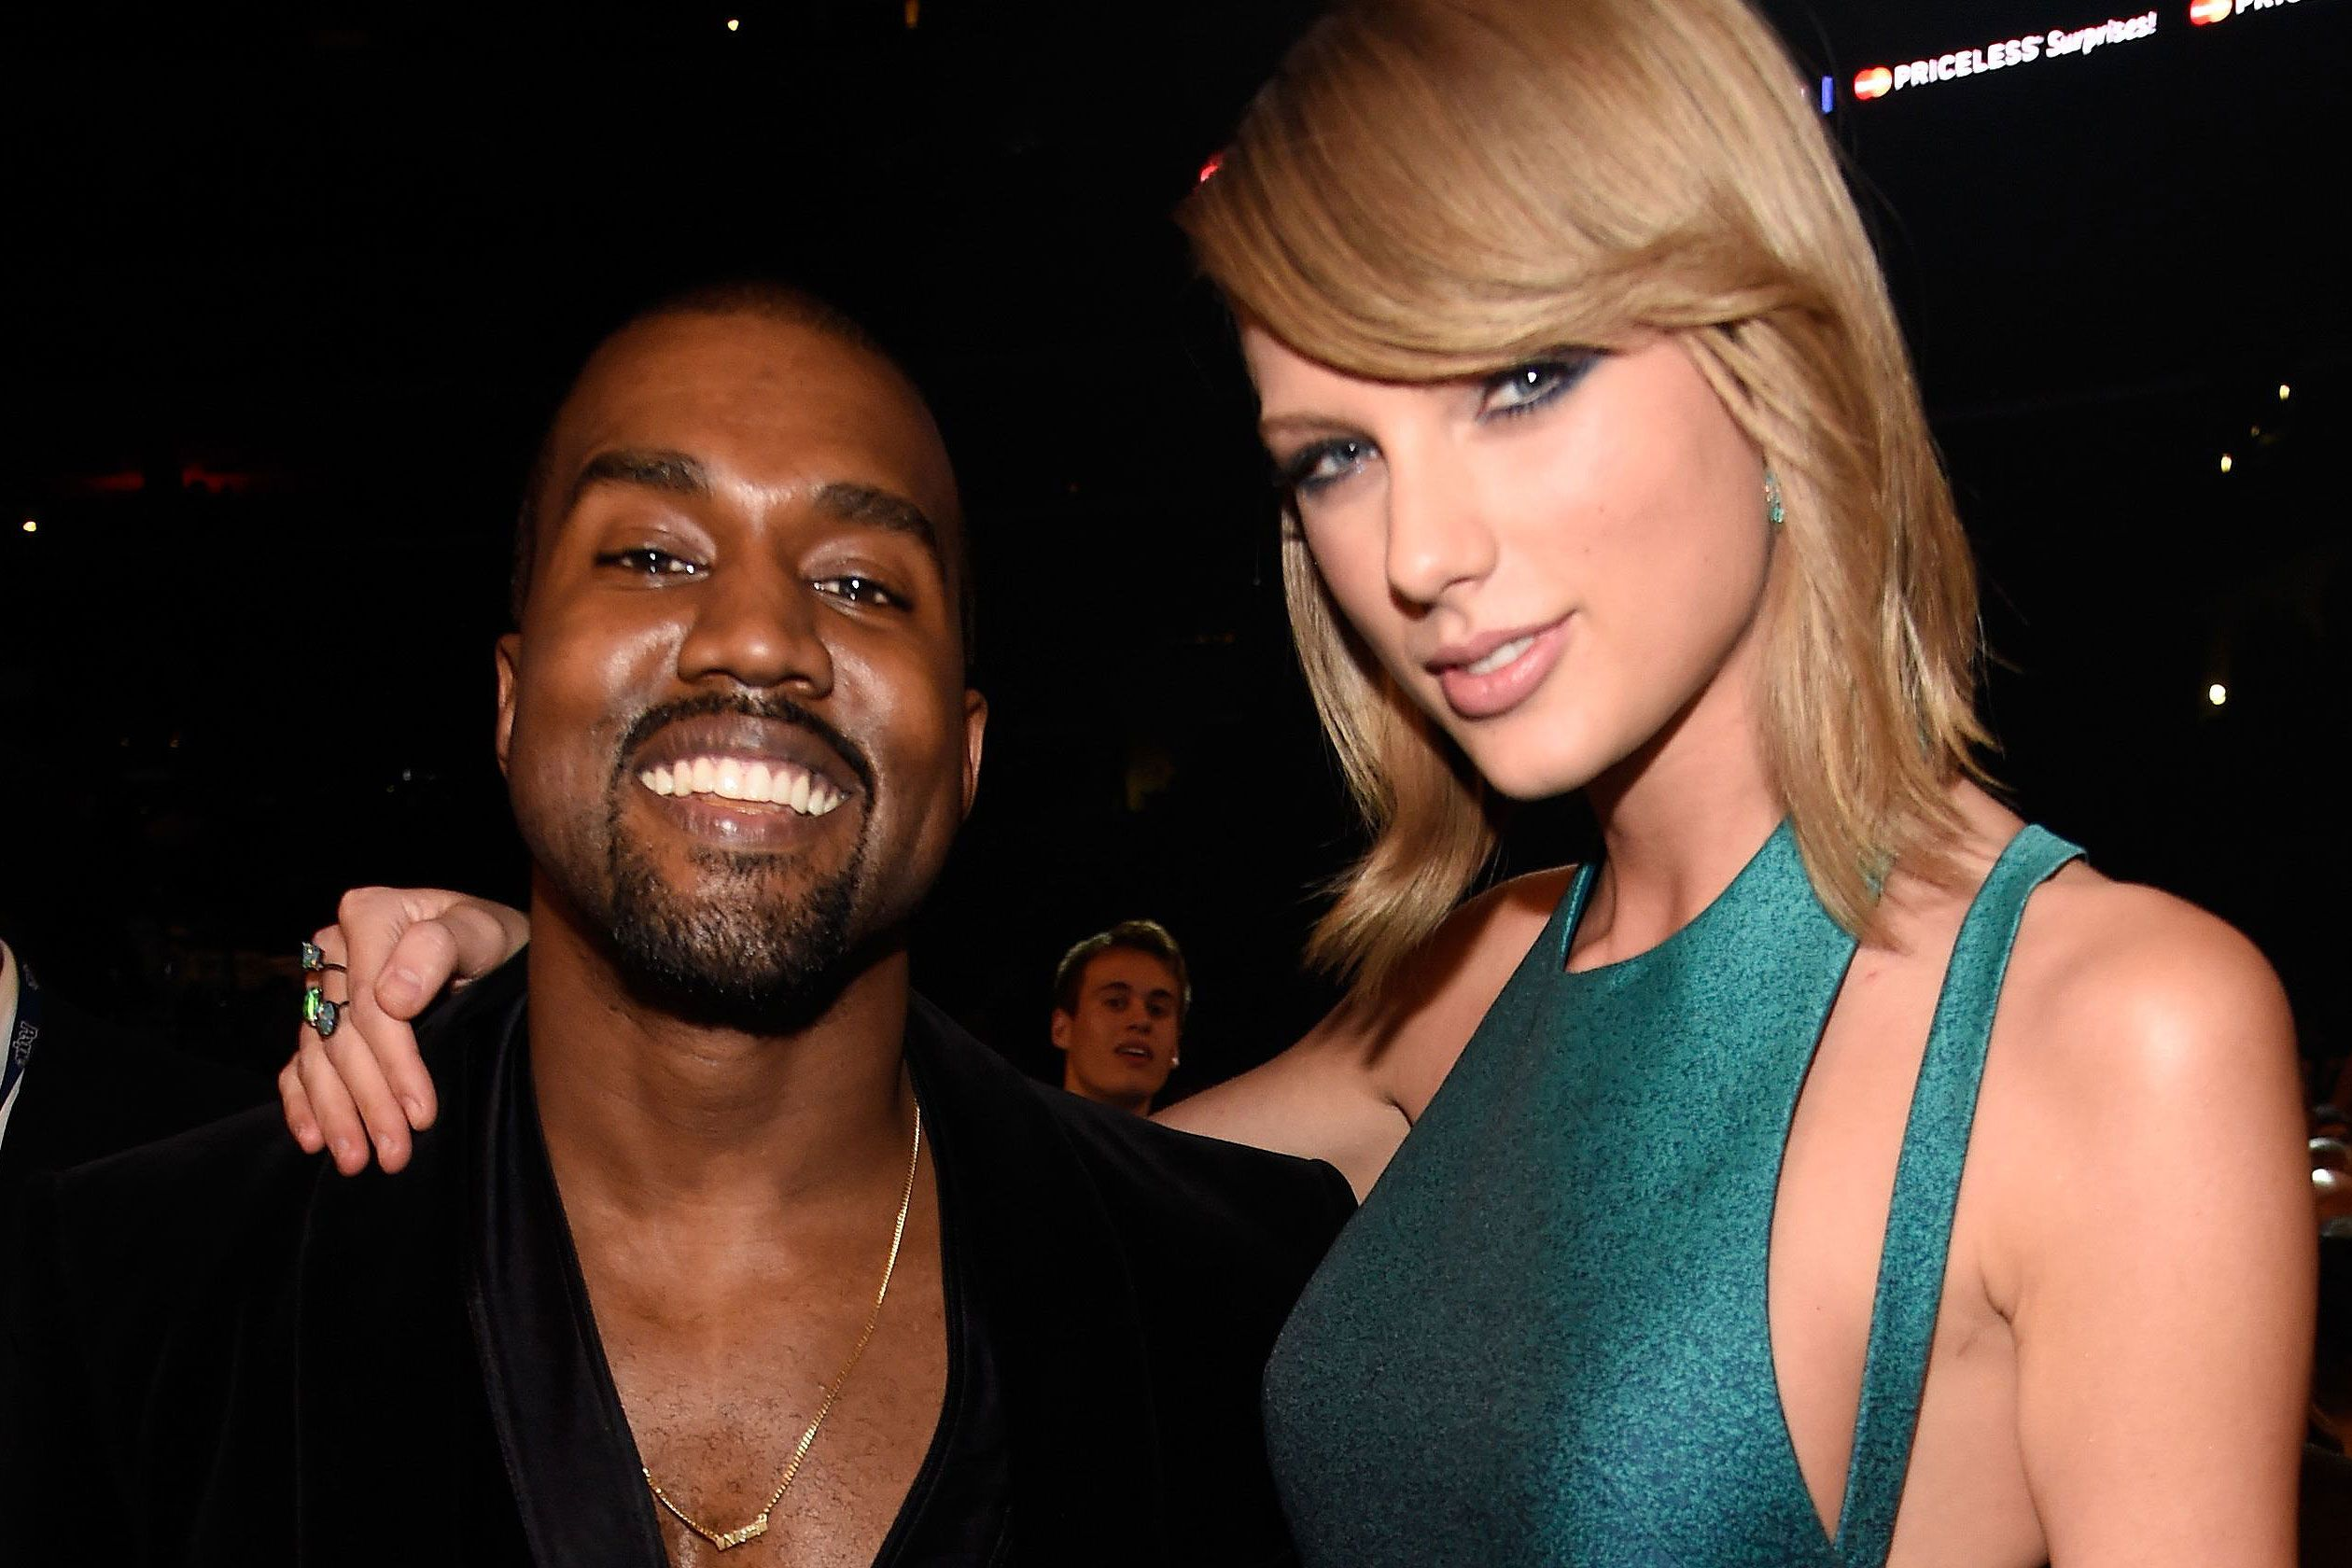 Kim Kardashian Posts Snapchat Of Kanye West Getting Taylor Swift S Approval For Famous Taylor Swift Kanye West Taylor Swift Album Kanye West And Kim